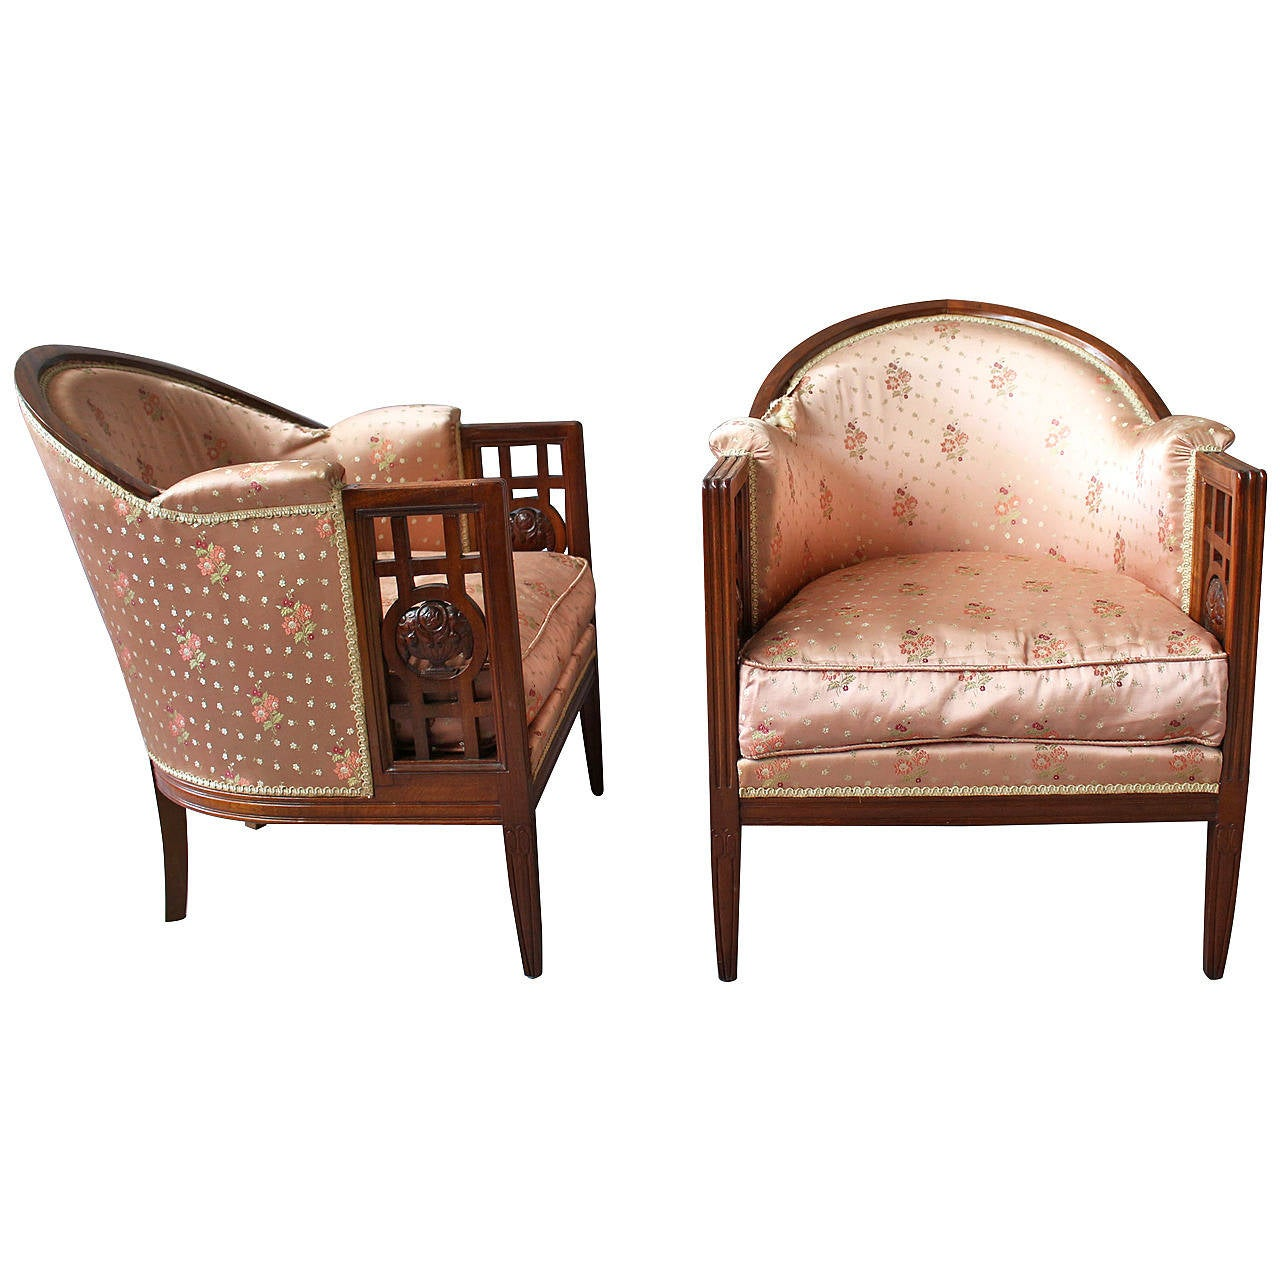 Pair of Fine French Art Deco Mahogany Armchairs by Paul Follot